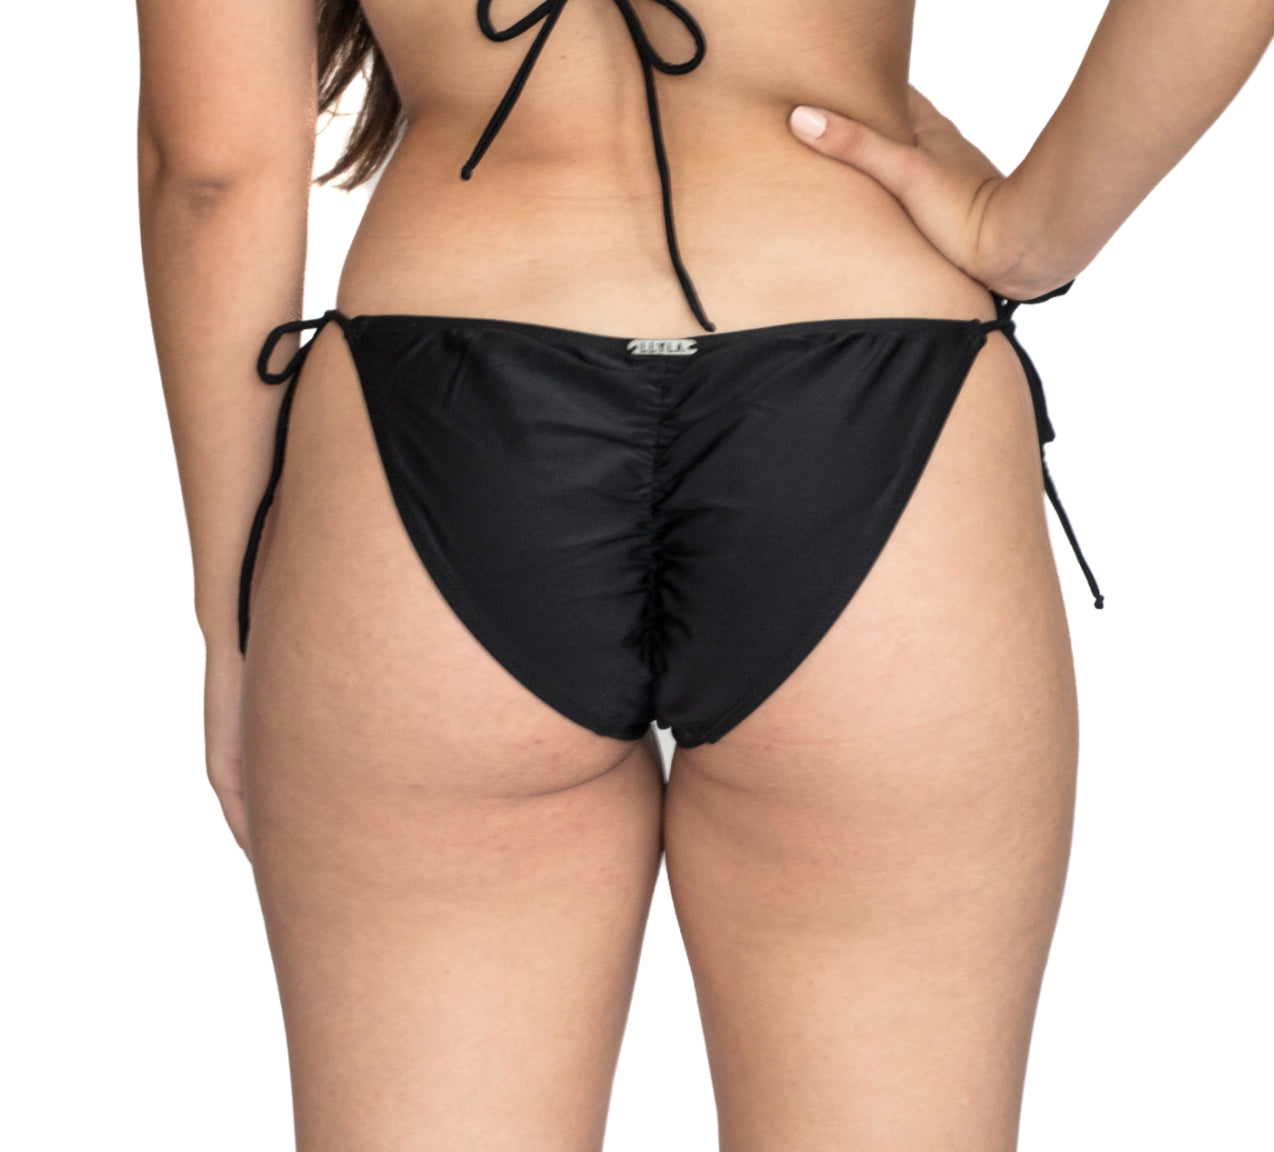 LLYLA Black String Bikini brief - with ruched back